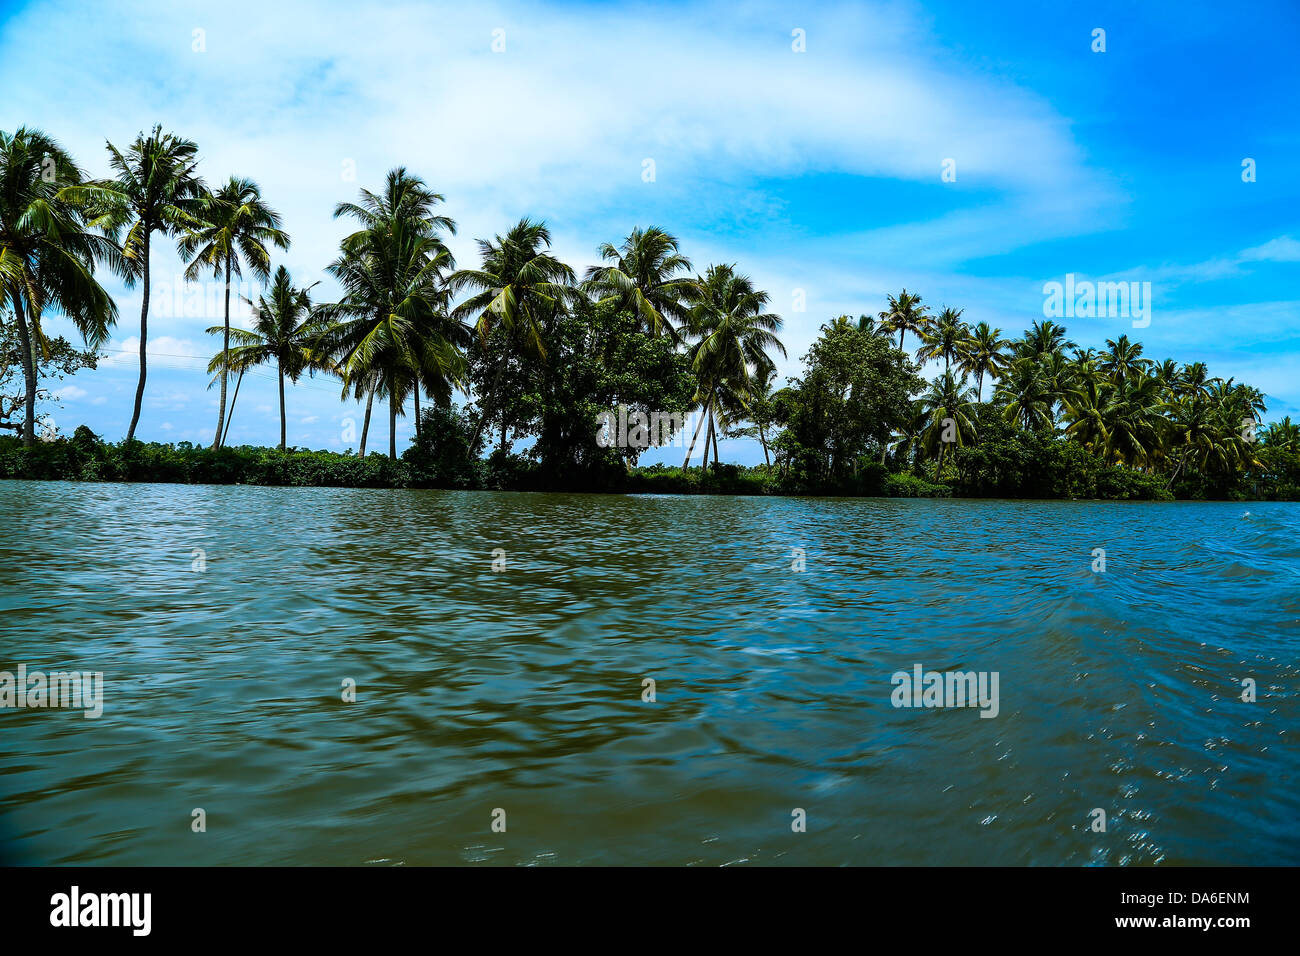 Serenity of backwaters - Stock Image